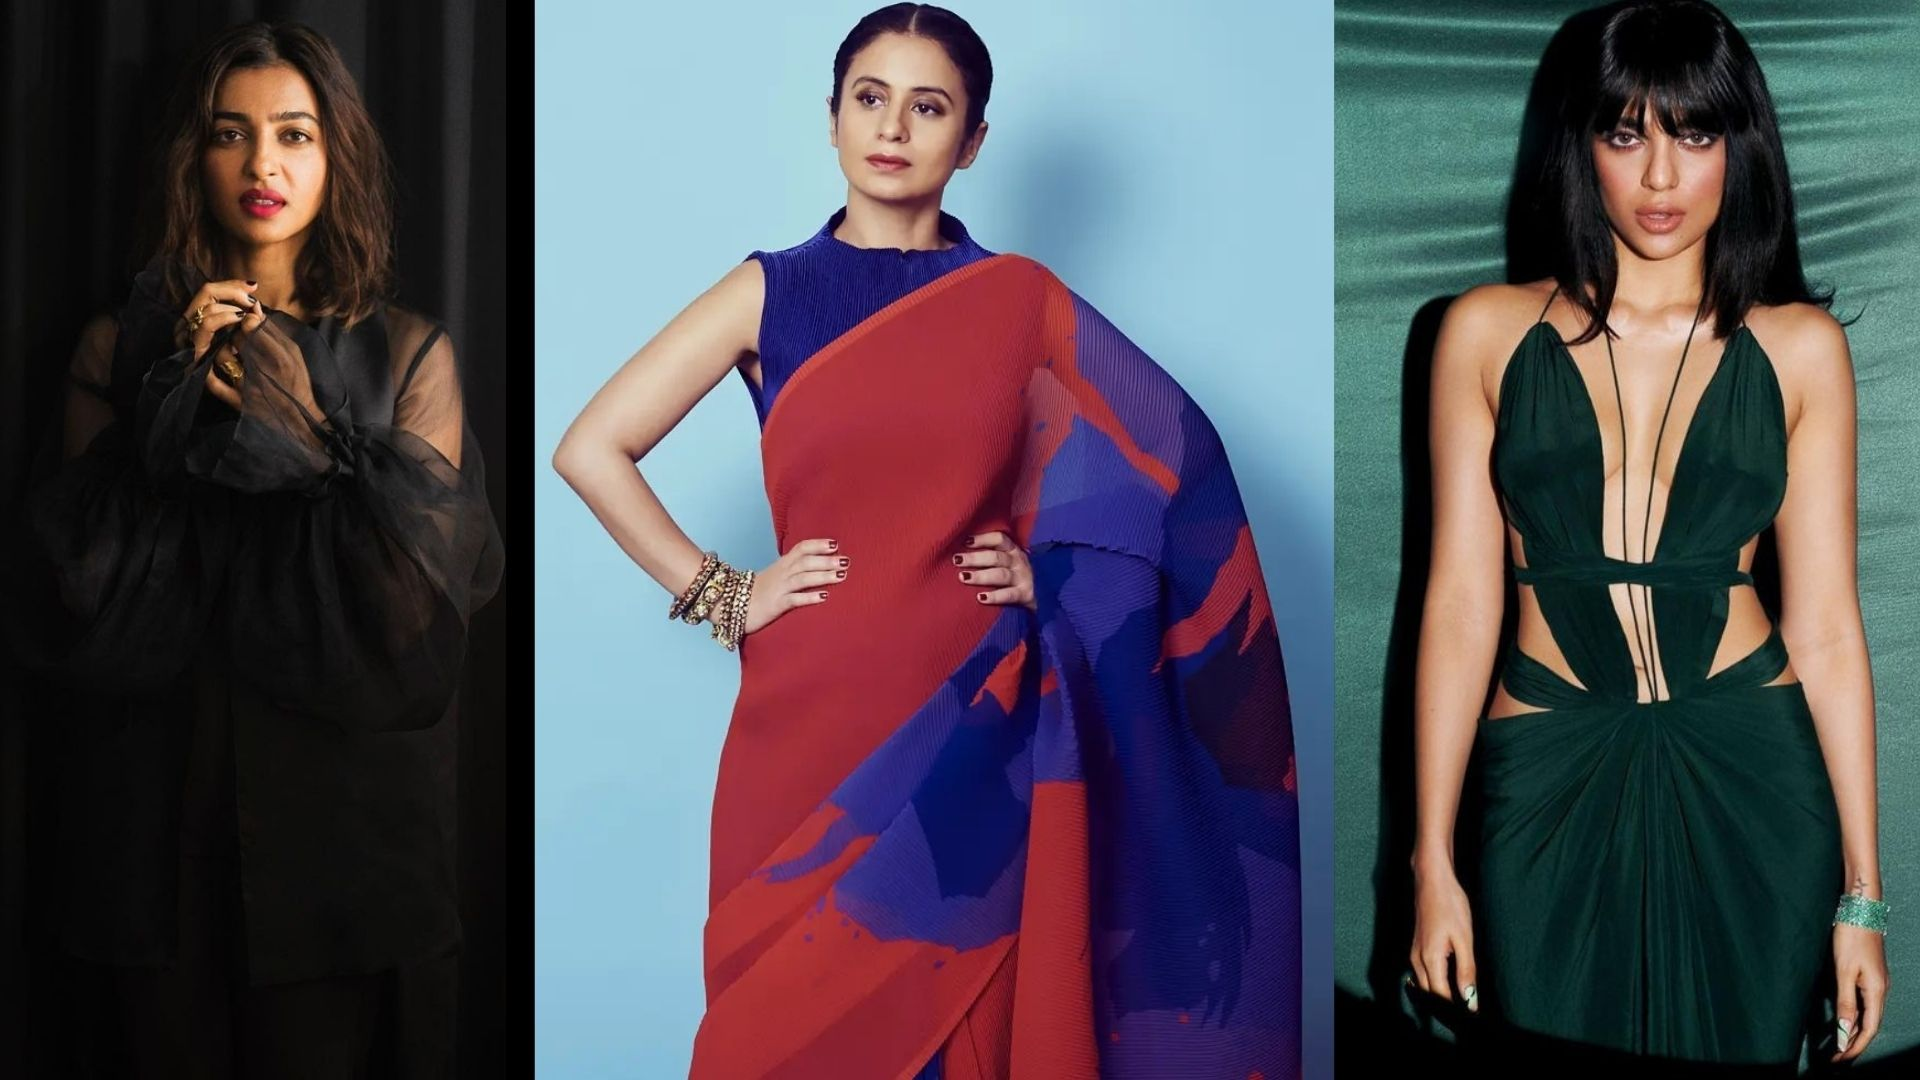 Radhika Apte, Rasika Dugal, And Other Actresses Who Are Set To Take Digital Media To New Heights